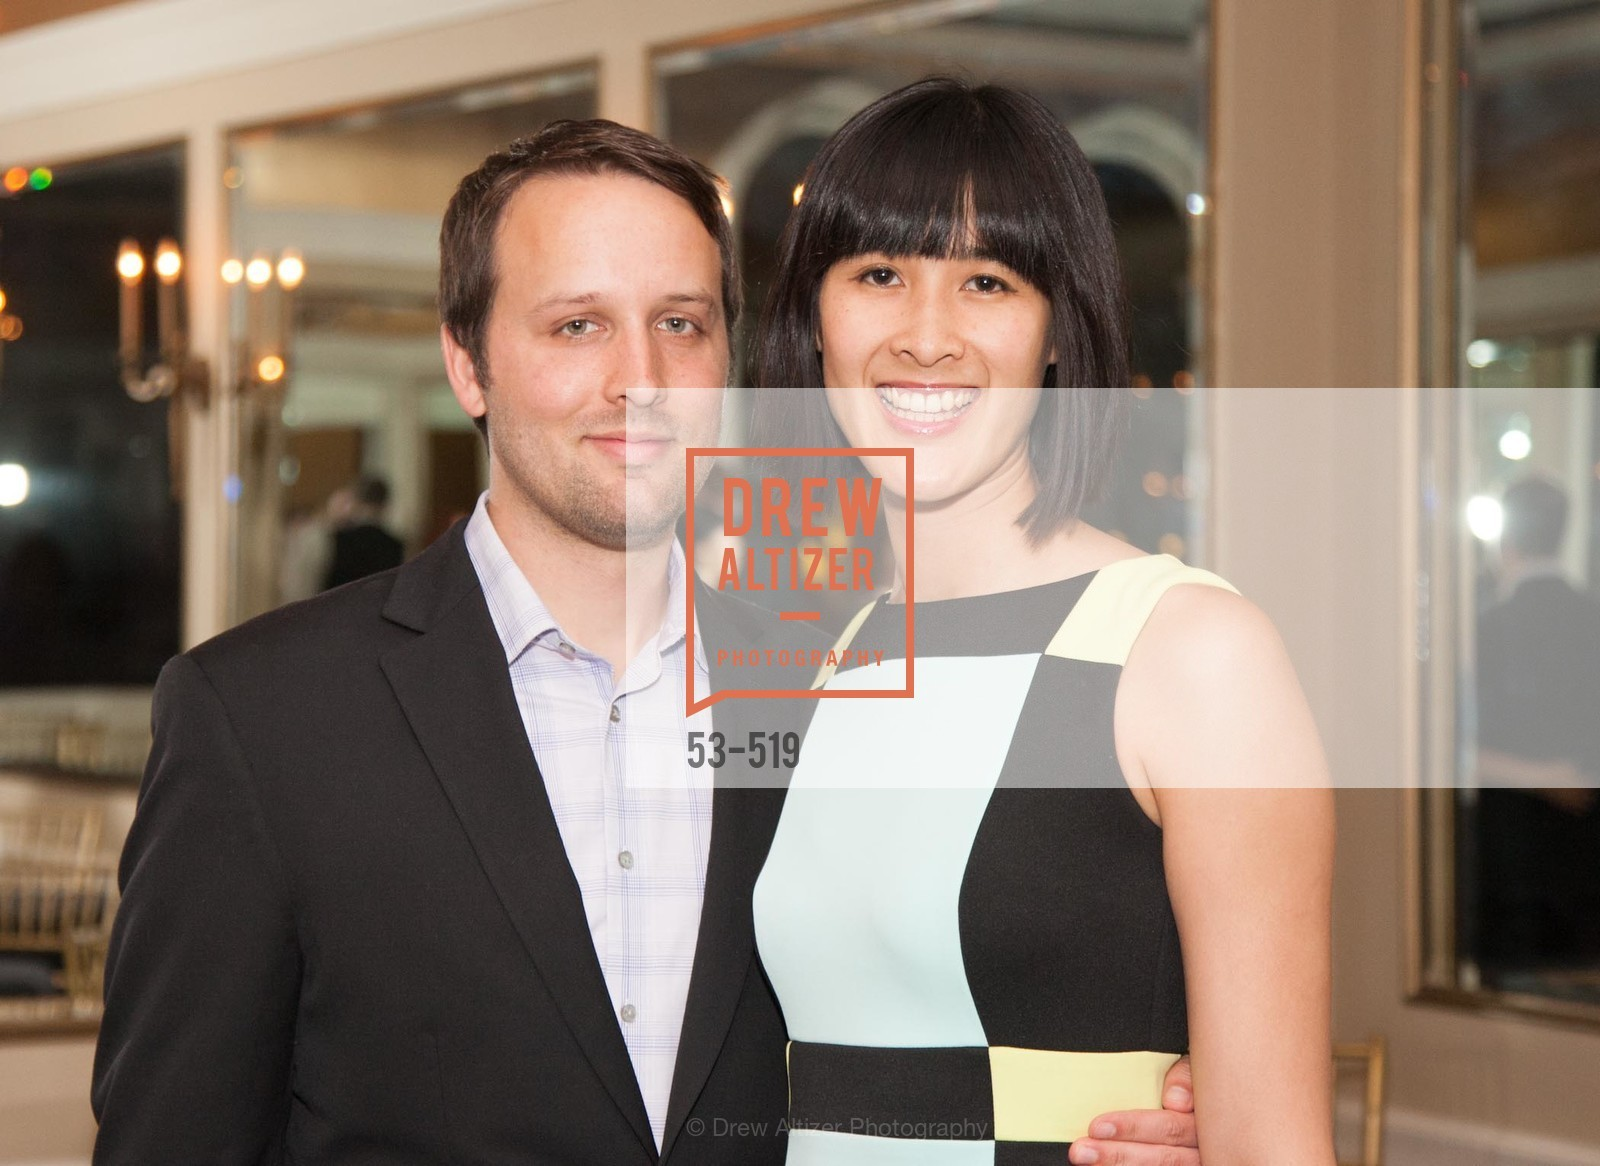 Ryan Valentin, Tinna Ho, Spinsters of San Francisco Presents: 2014 Patrons Reception Honoring Lori Shigekane, US. US, April 12th, 2014,Drew Altizer, Drew Altizer Photography, full-service agency, private events, San Francisco photographer, photographer california